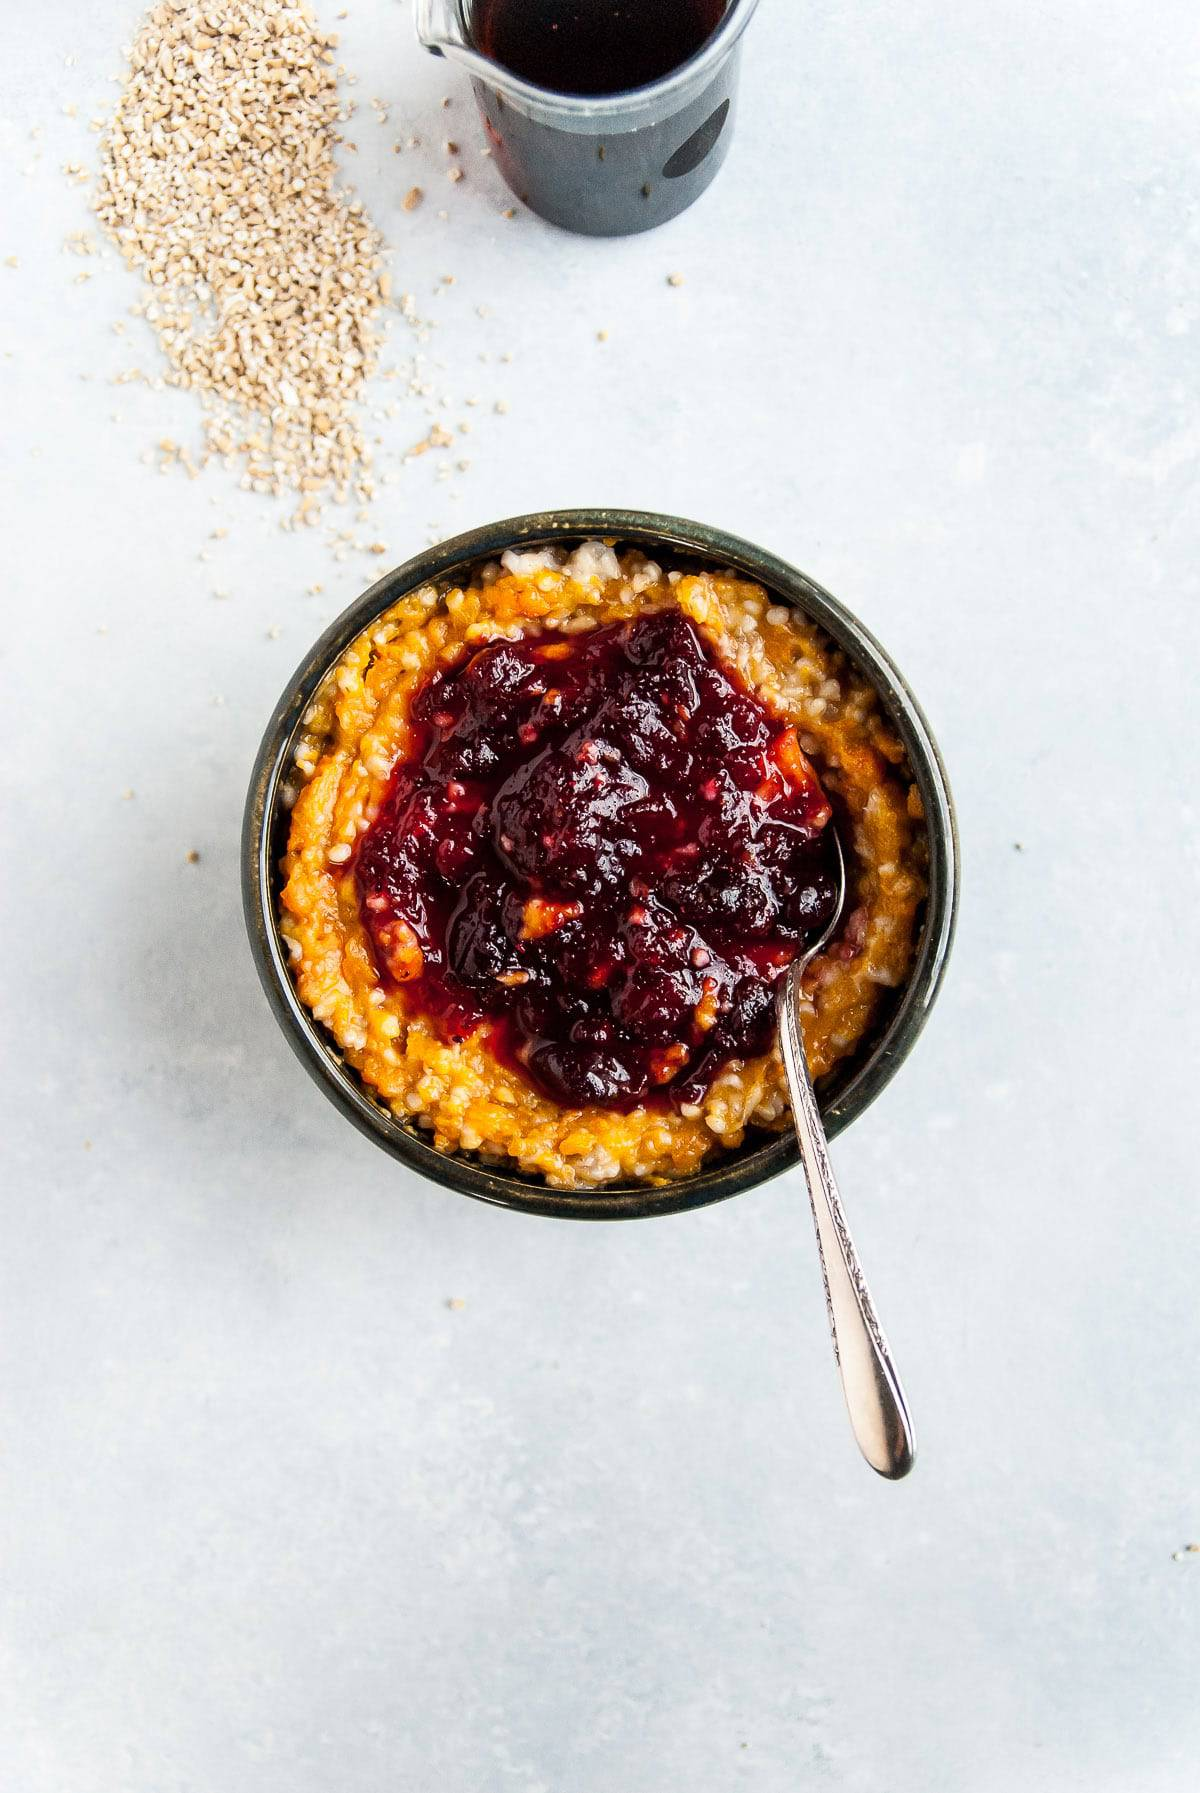 The perfect way to use up Thanksgiving leftovers, this vegan sweet potato oatmeal is topped with cranberry sauce and perfect for prepping ahead!